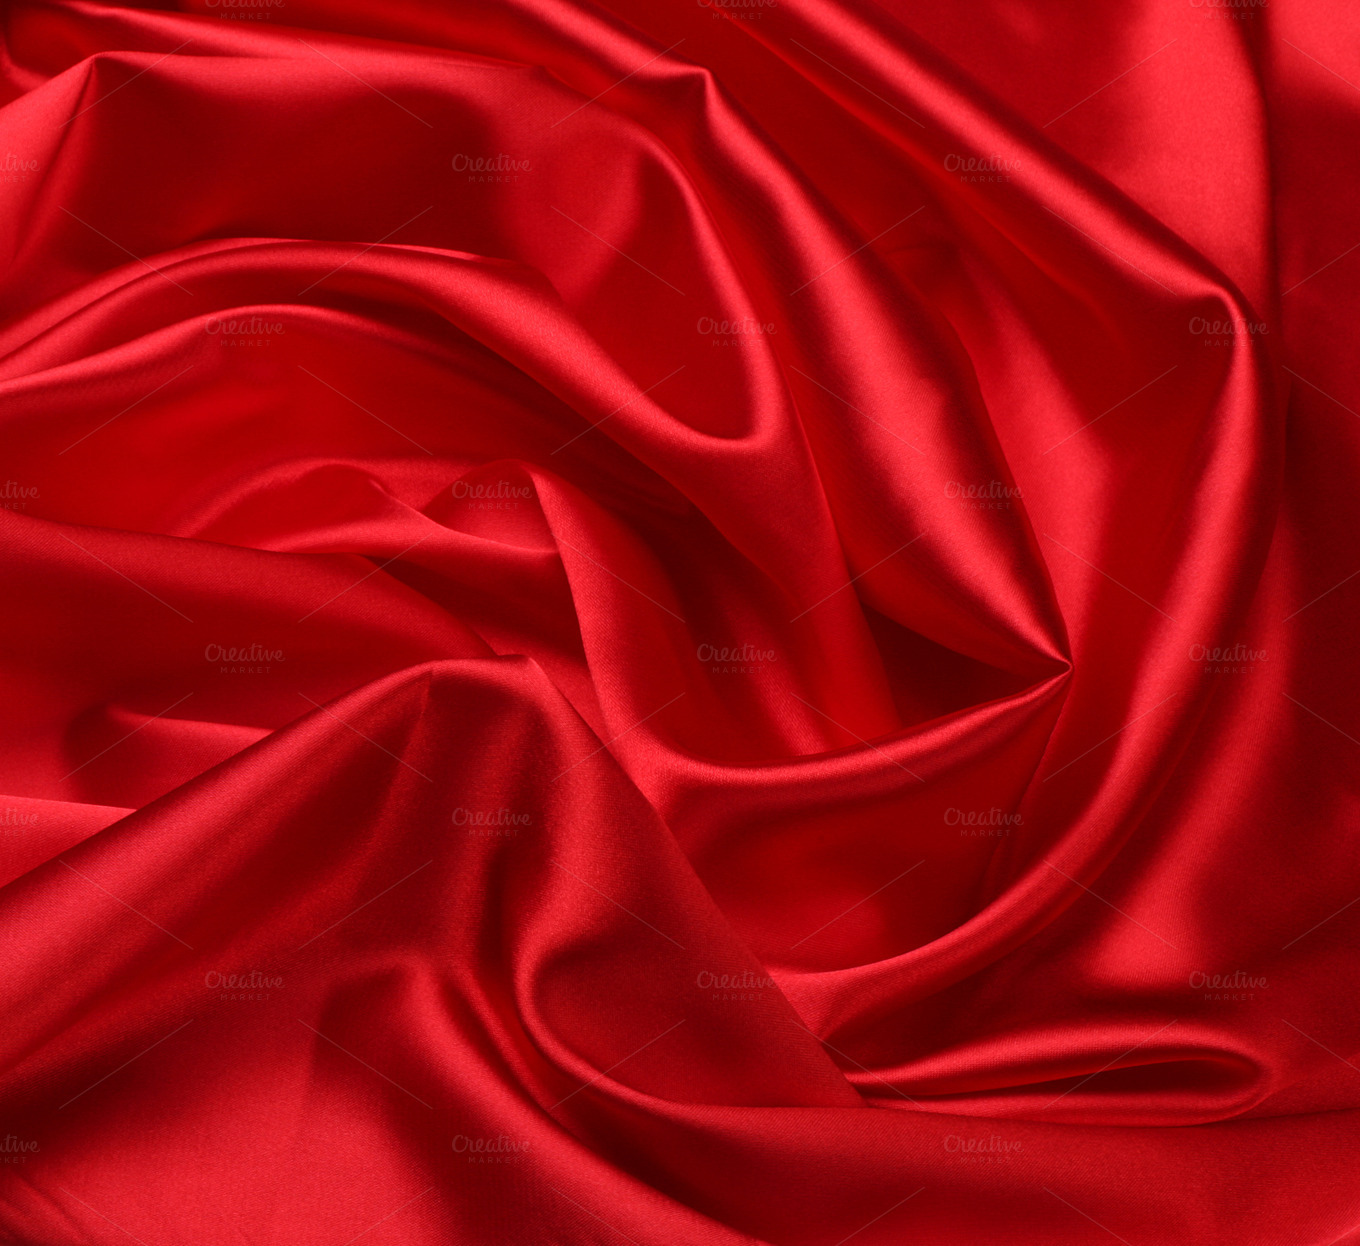 red silk fabric background ~ Abstract Photos on Creative